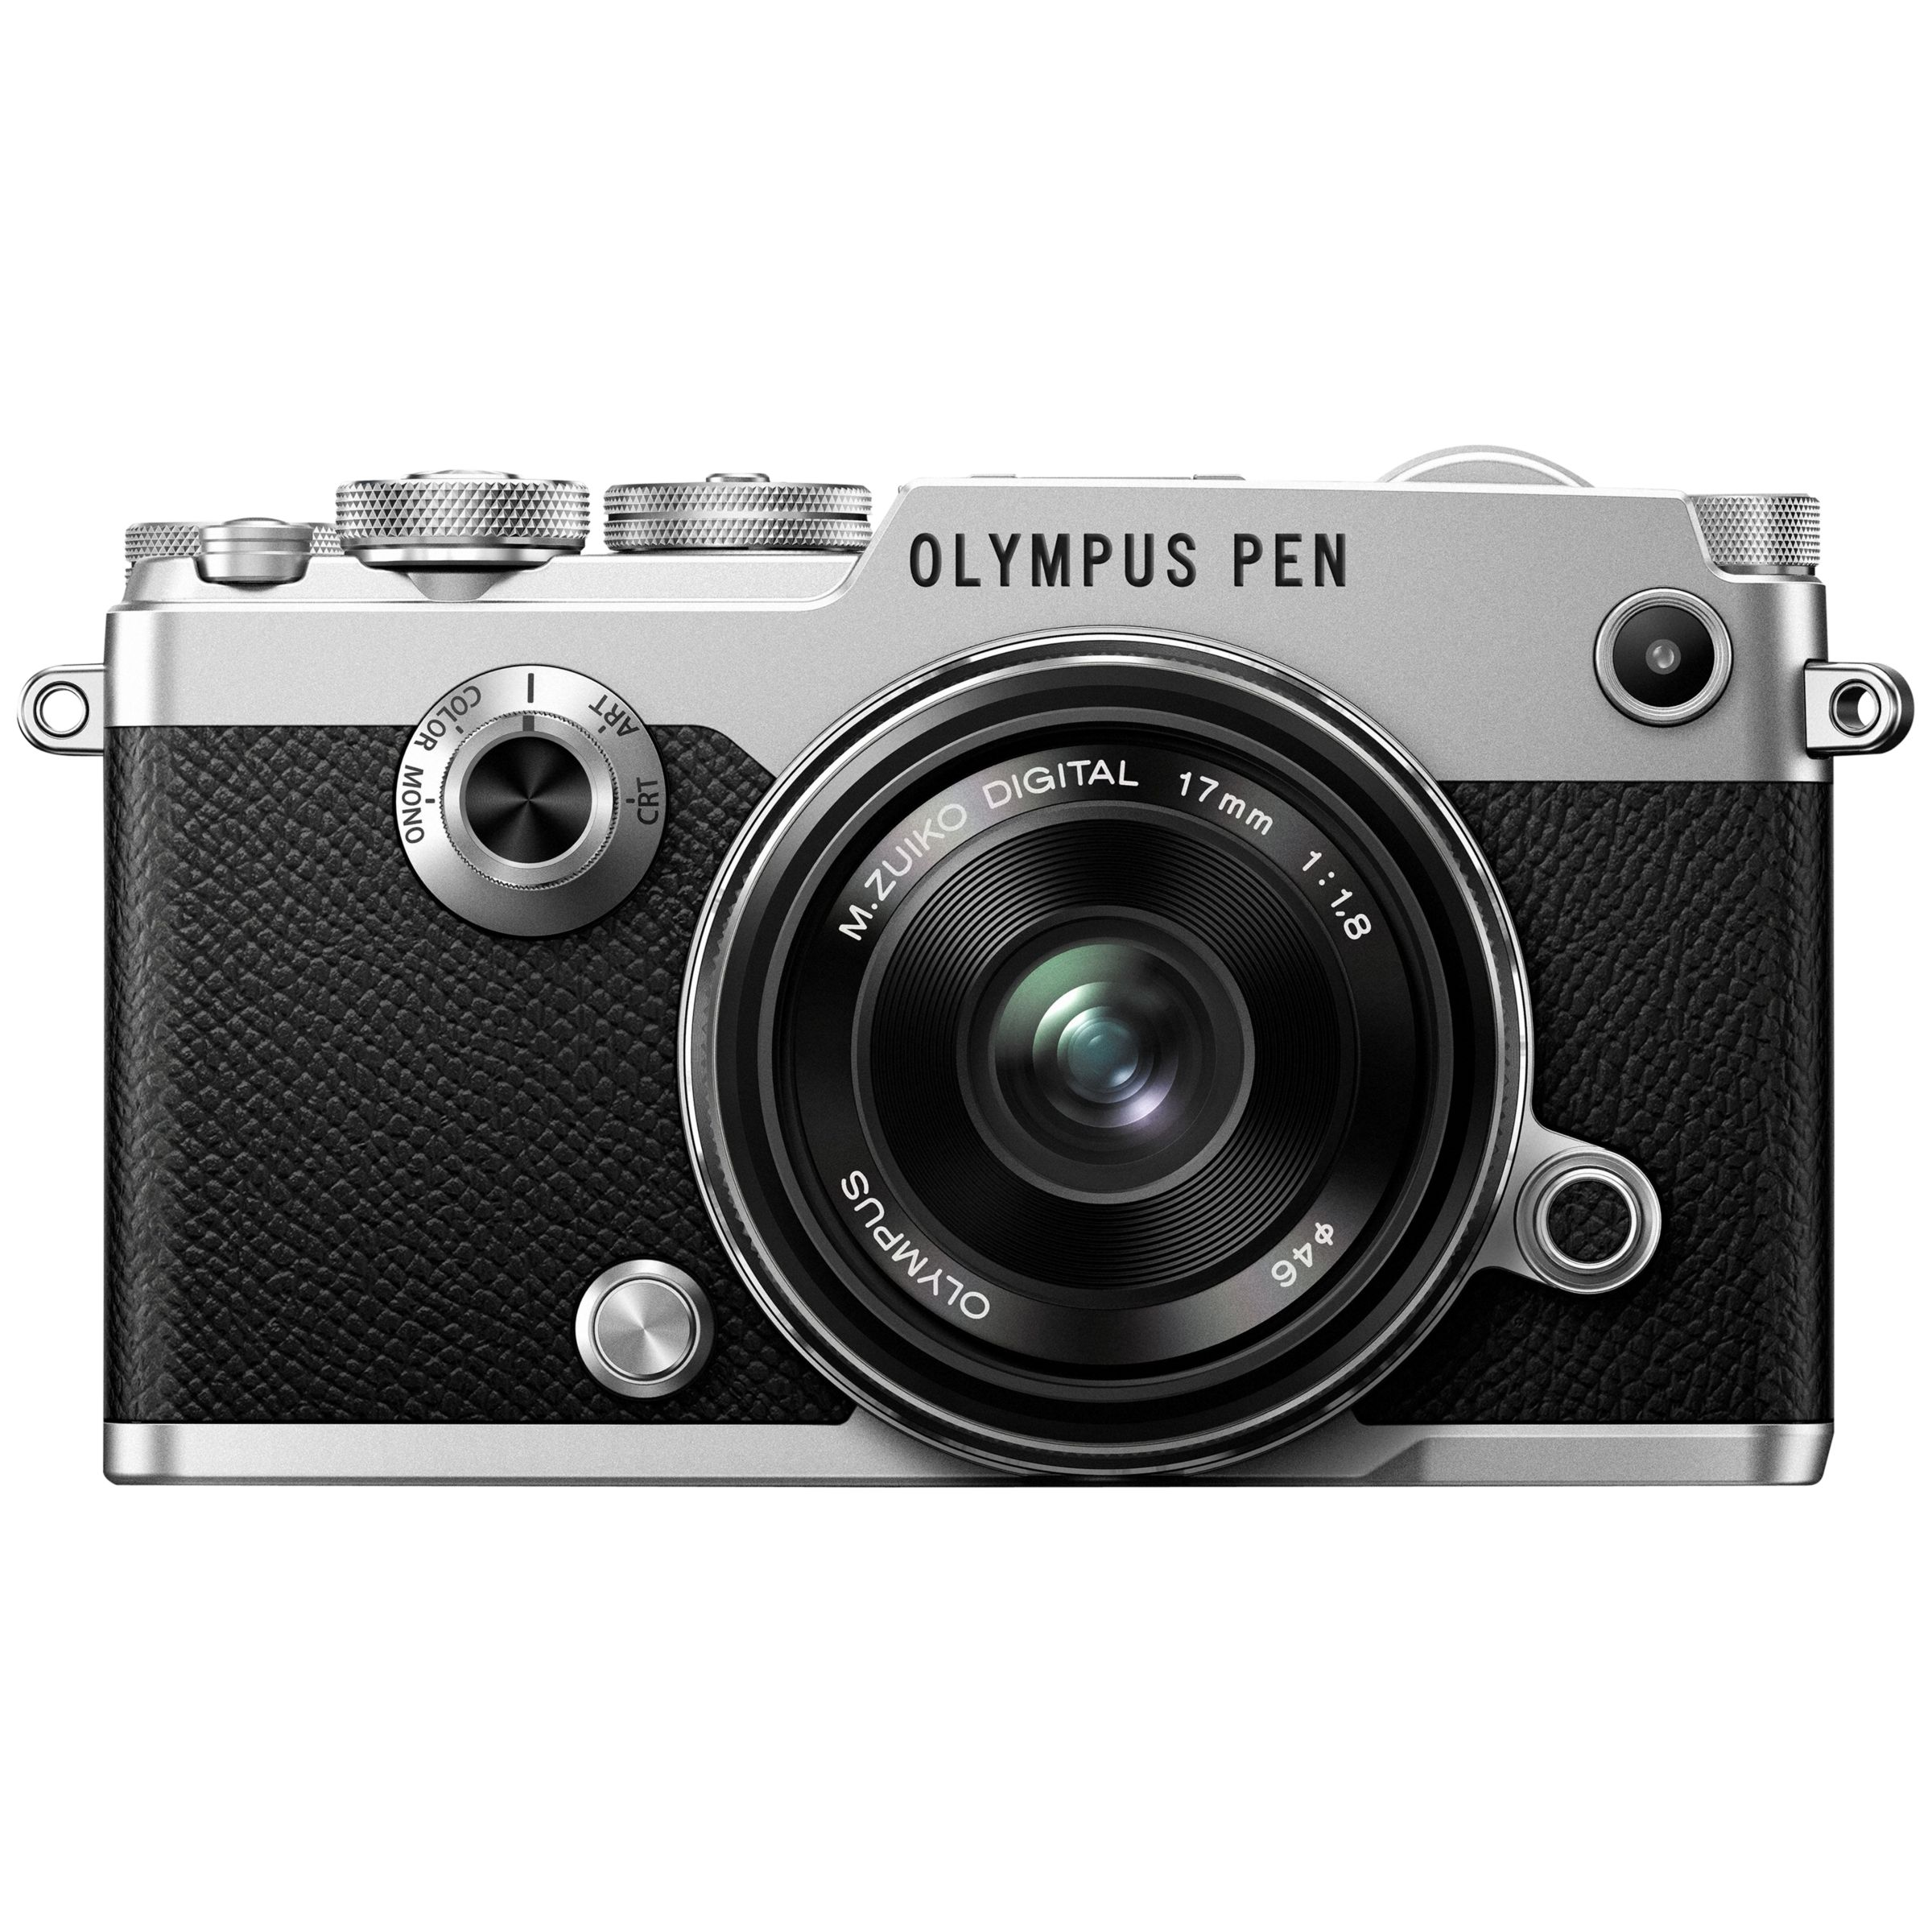 Olympus Olympus Pen F Compact System Camera With M.ZUIKO 17mm Prime Lens, HD 1080p, 20.3MP, Wi-Fi, Front Creative Dial, 5-Axis IS, 3 Vari-Angle Touch Monitor, Silver